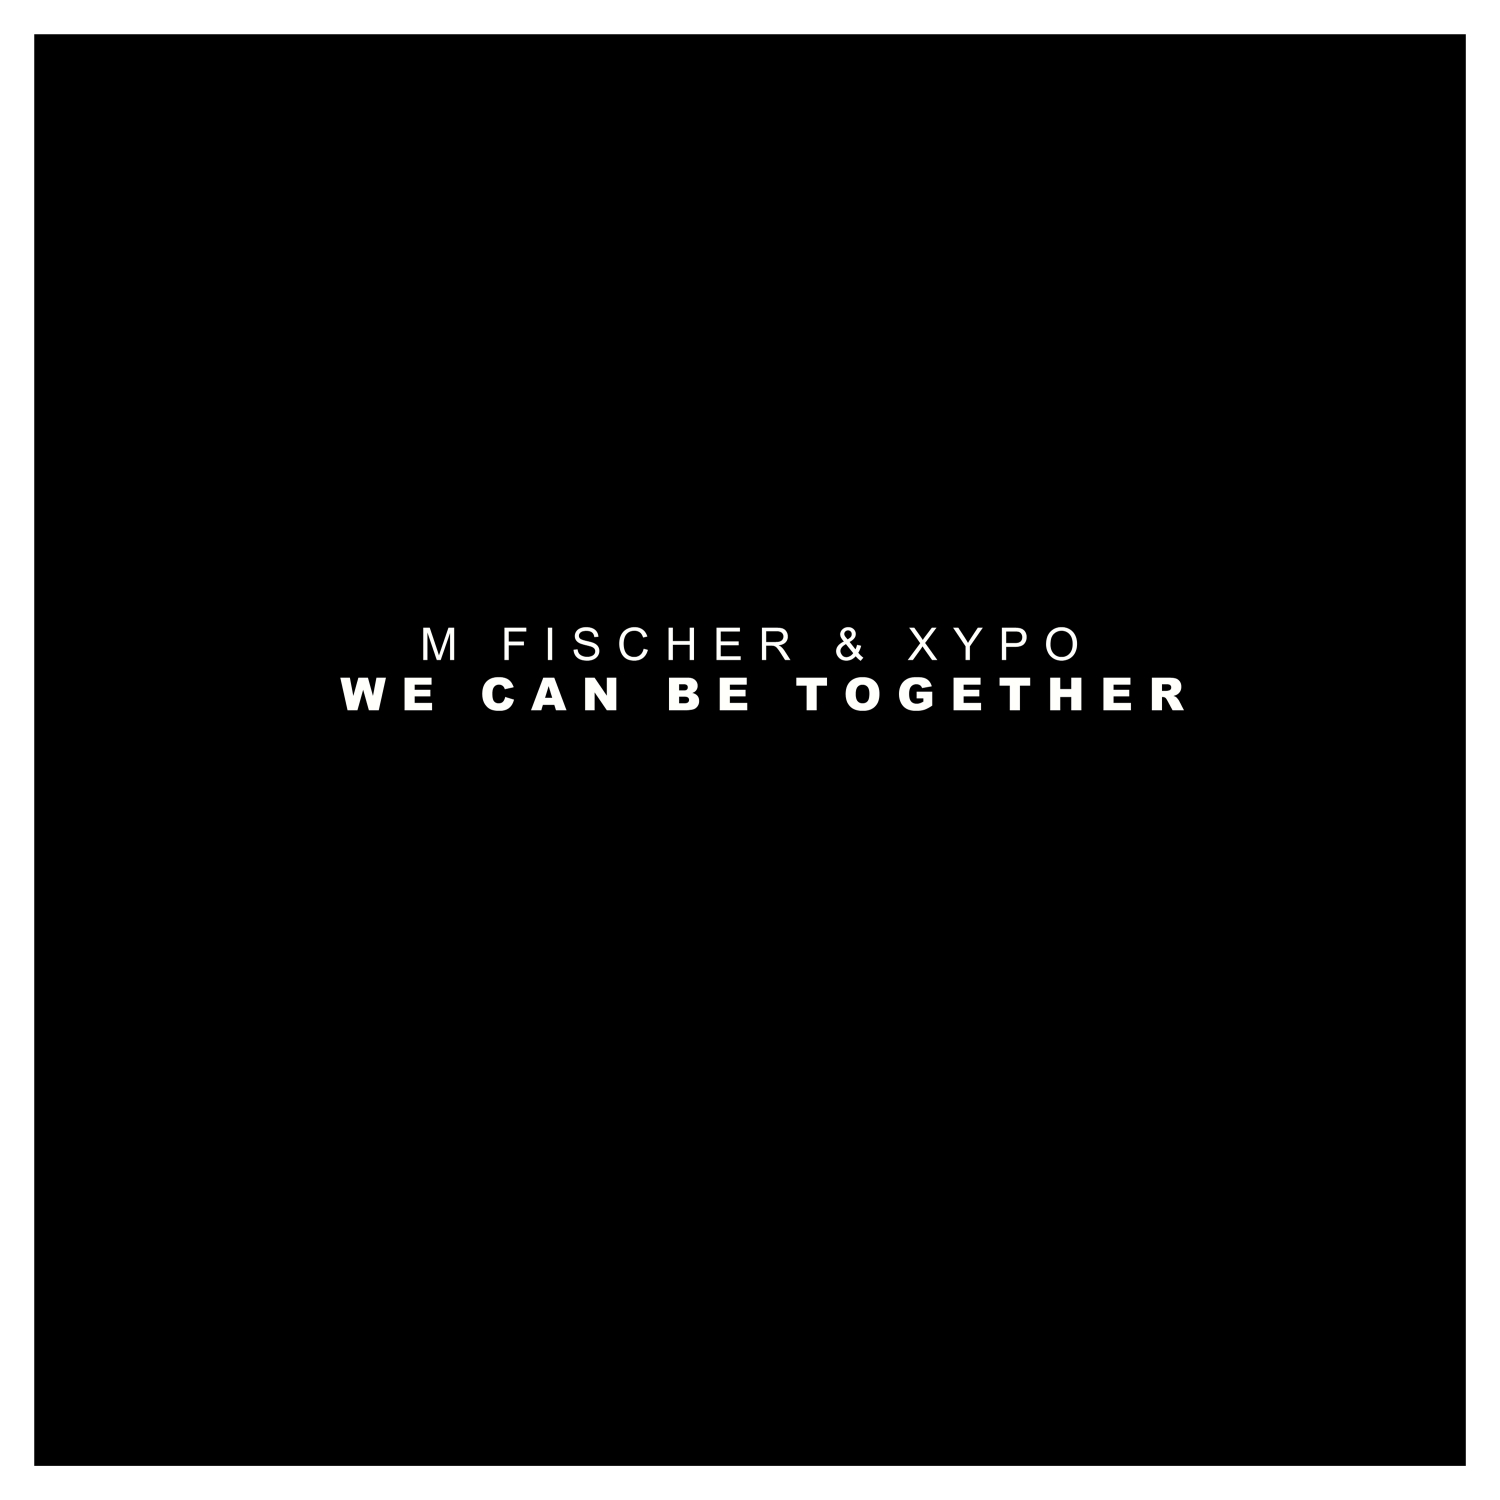 M Fischer & XYPO - We Can Be Together (Original Mix) ()